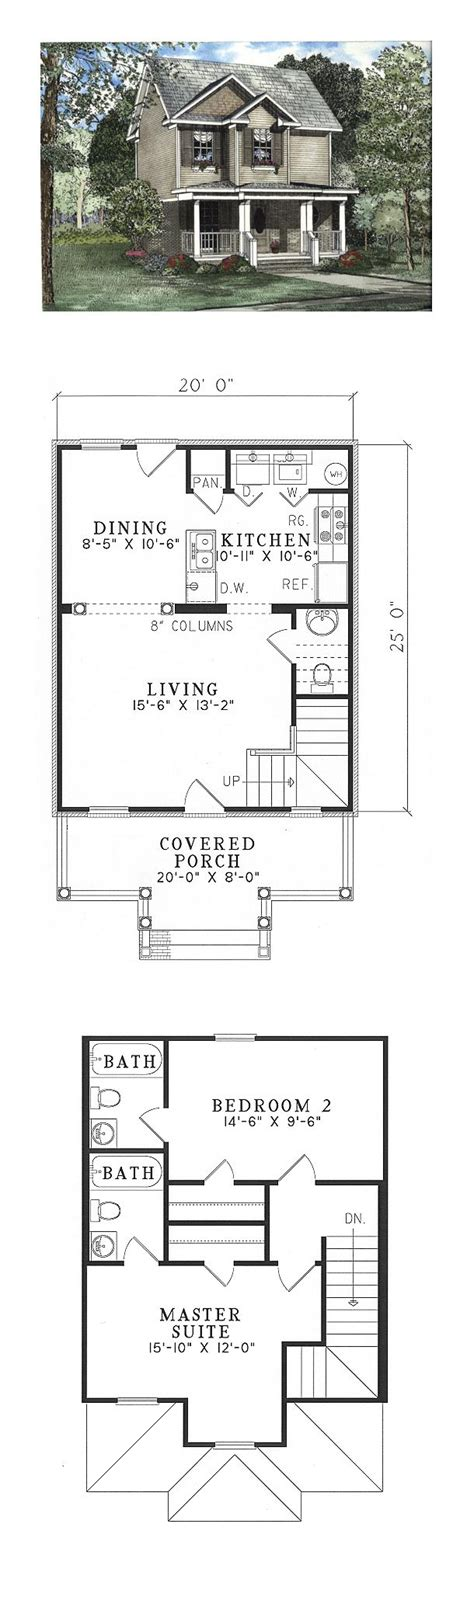 narrow lot floor plans 50 best narrow lot home plans images on pinterest narrow lot house plans arquitetura and my house